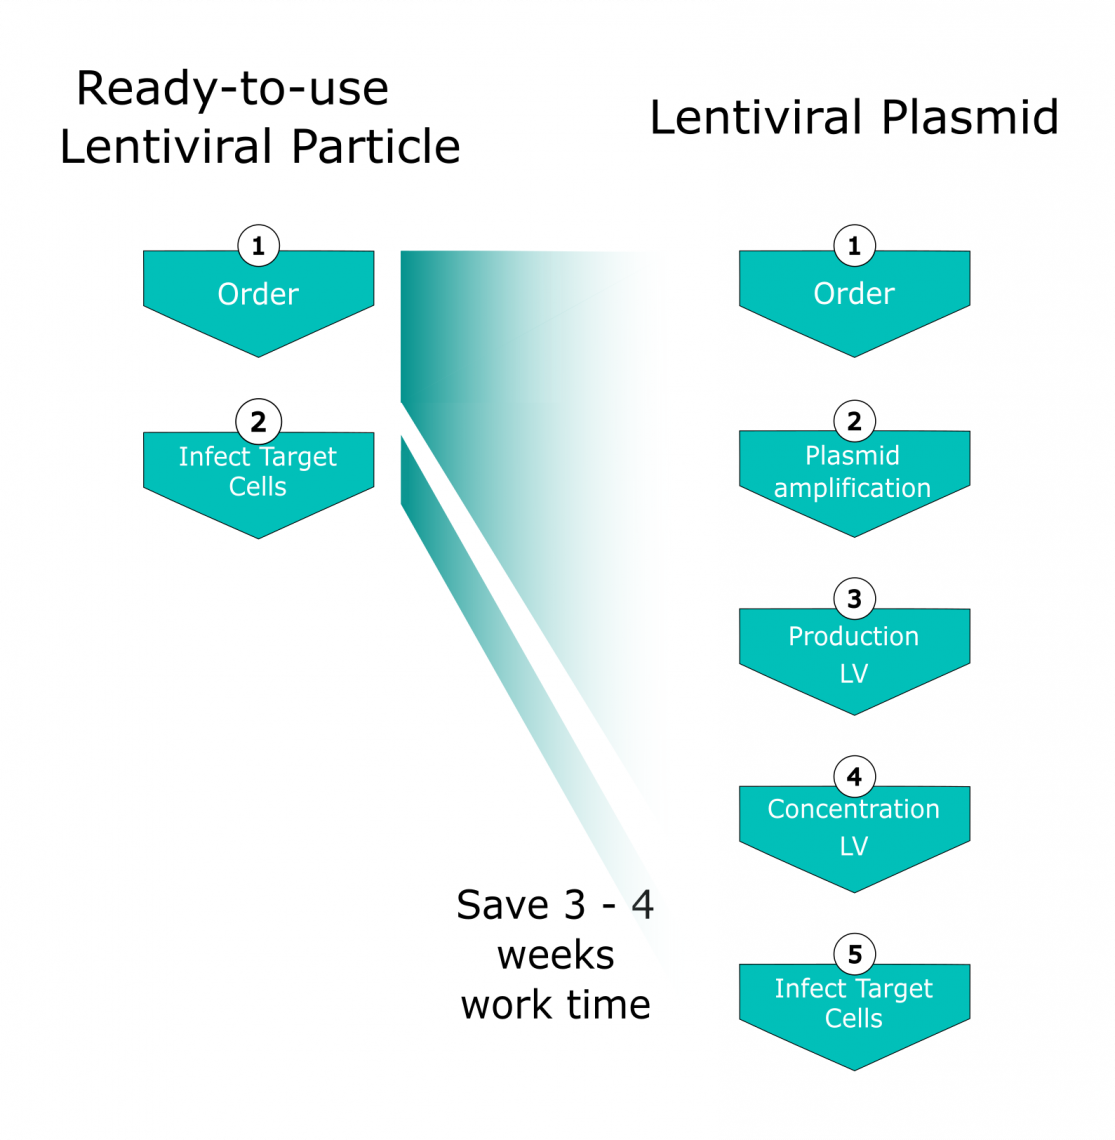 Fig.1: Comparison of work time necessary until target cell infection: Left: Ready-to-use-Lentiviral Particles; Right: Lentiviral Plasmid